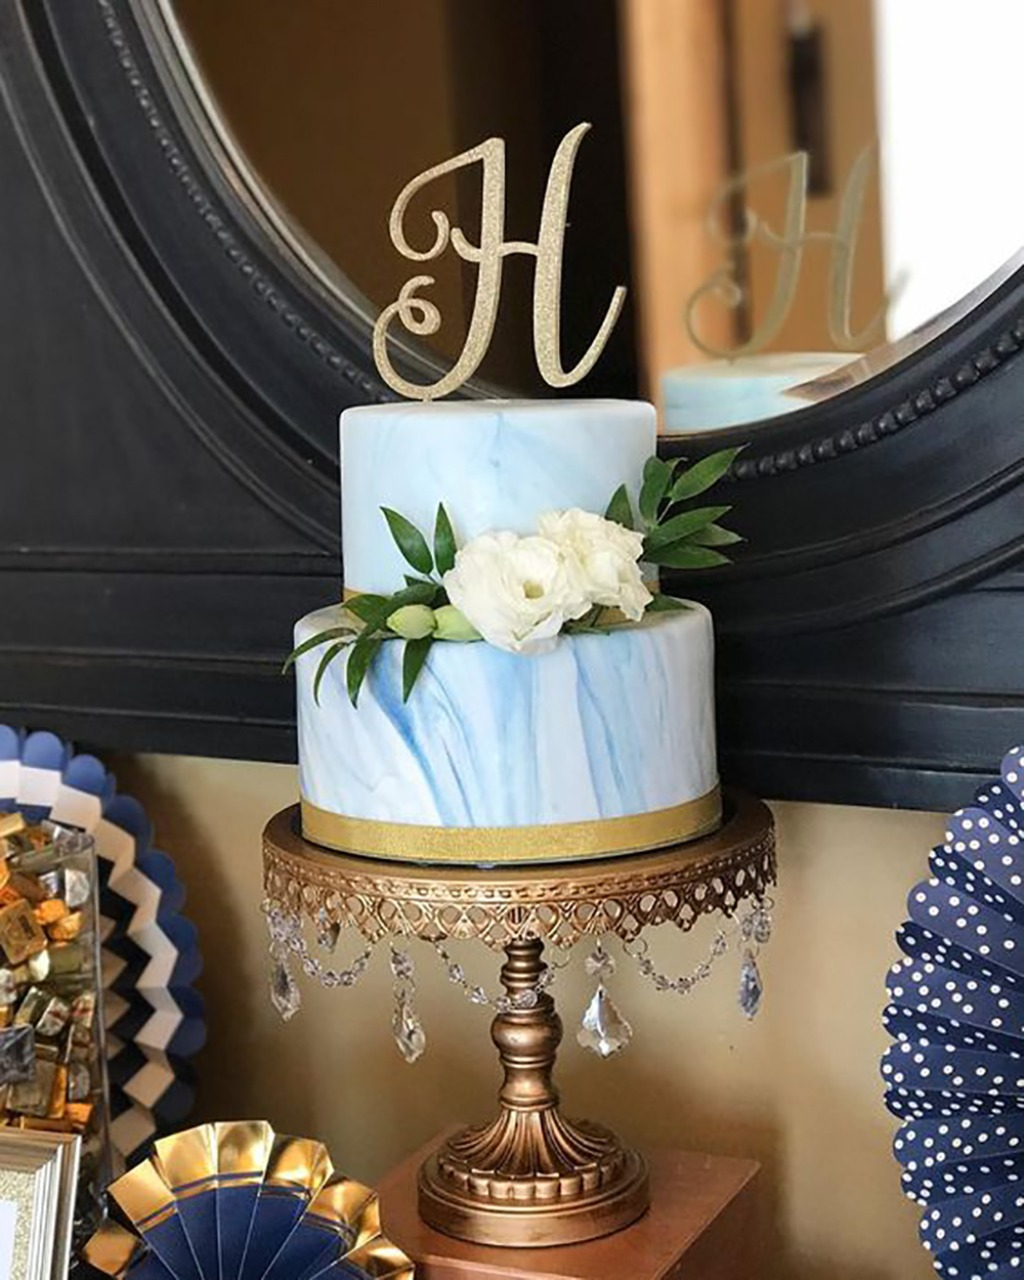 Modern Blue Marble Wedding Cake on Antique Gold Chandelier Cake Stand. Opulent Treasures offers a gorgeous collection of wedding cake